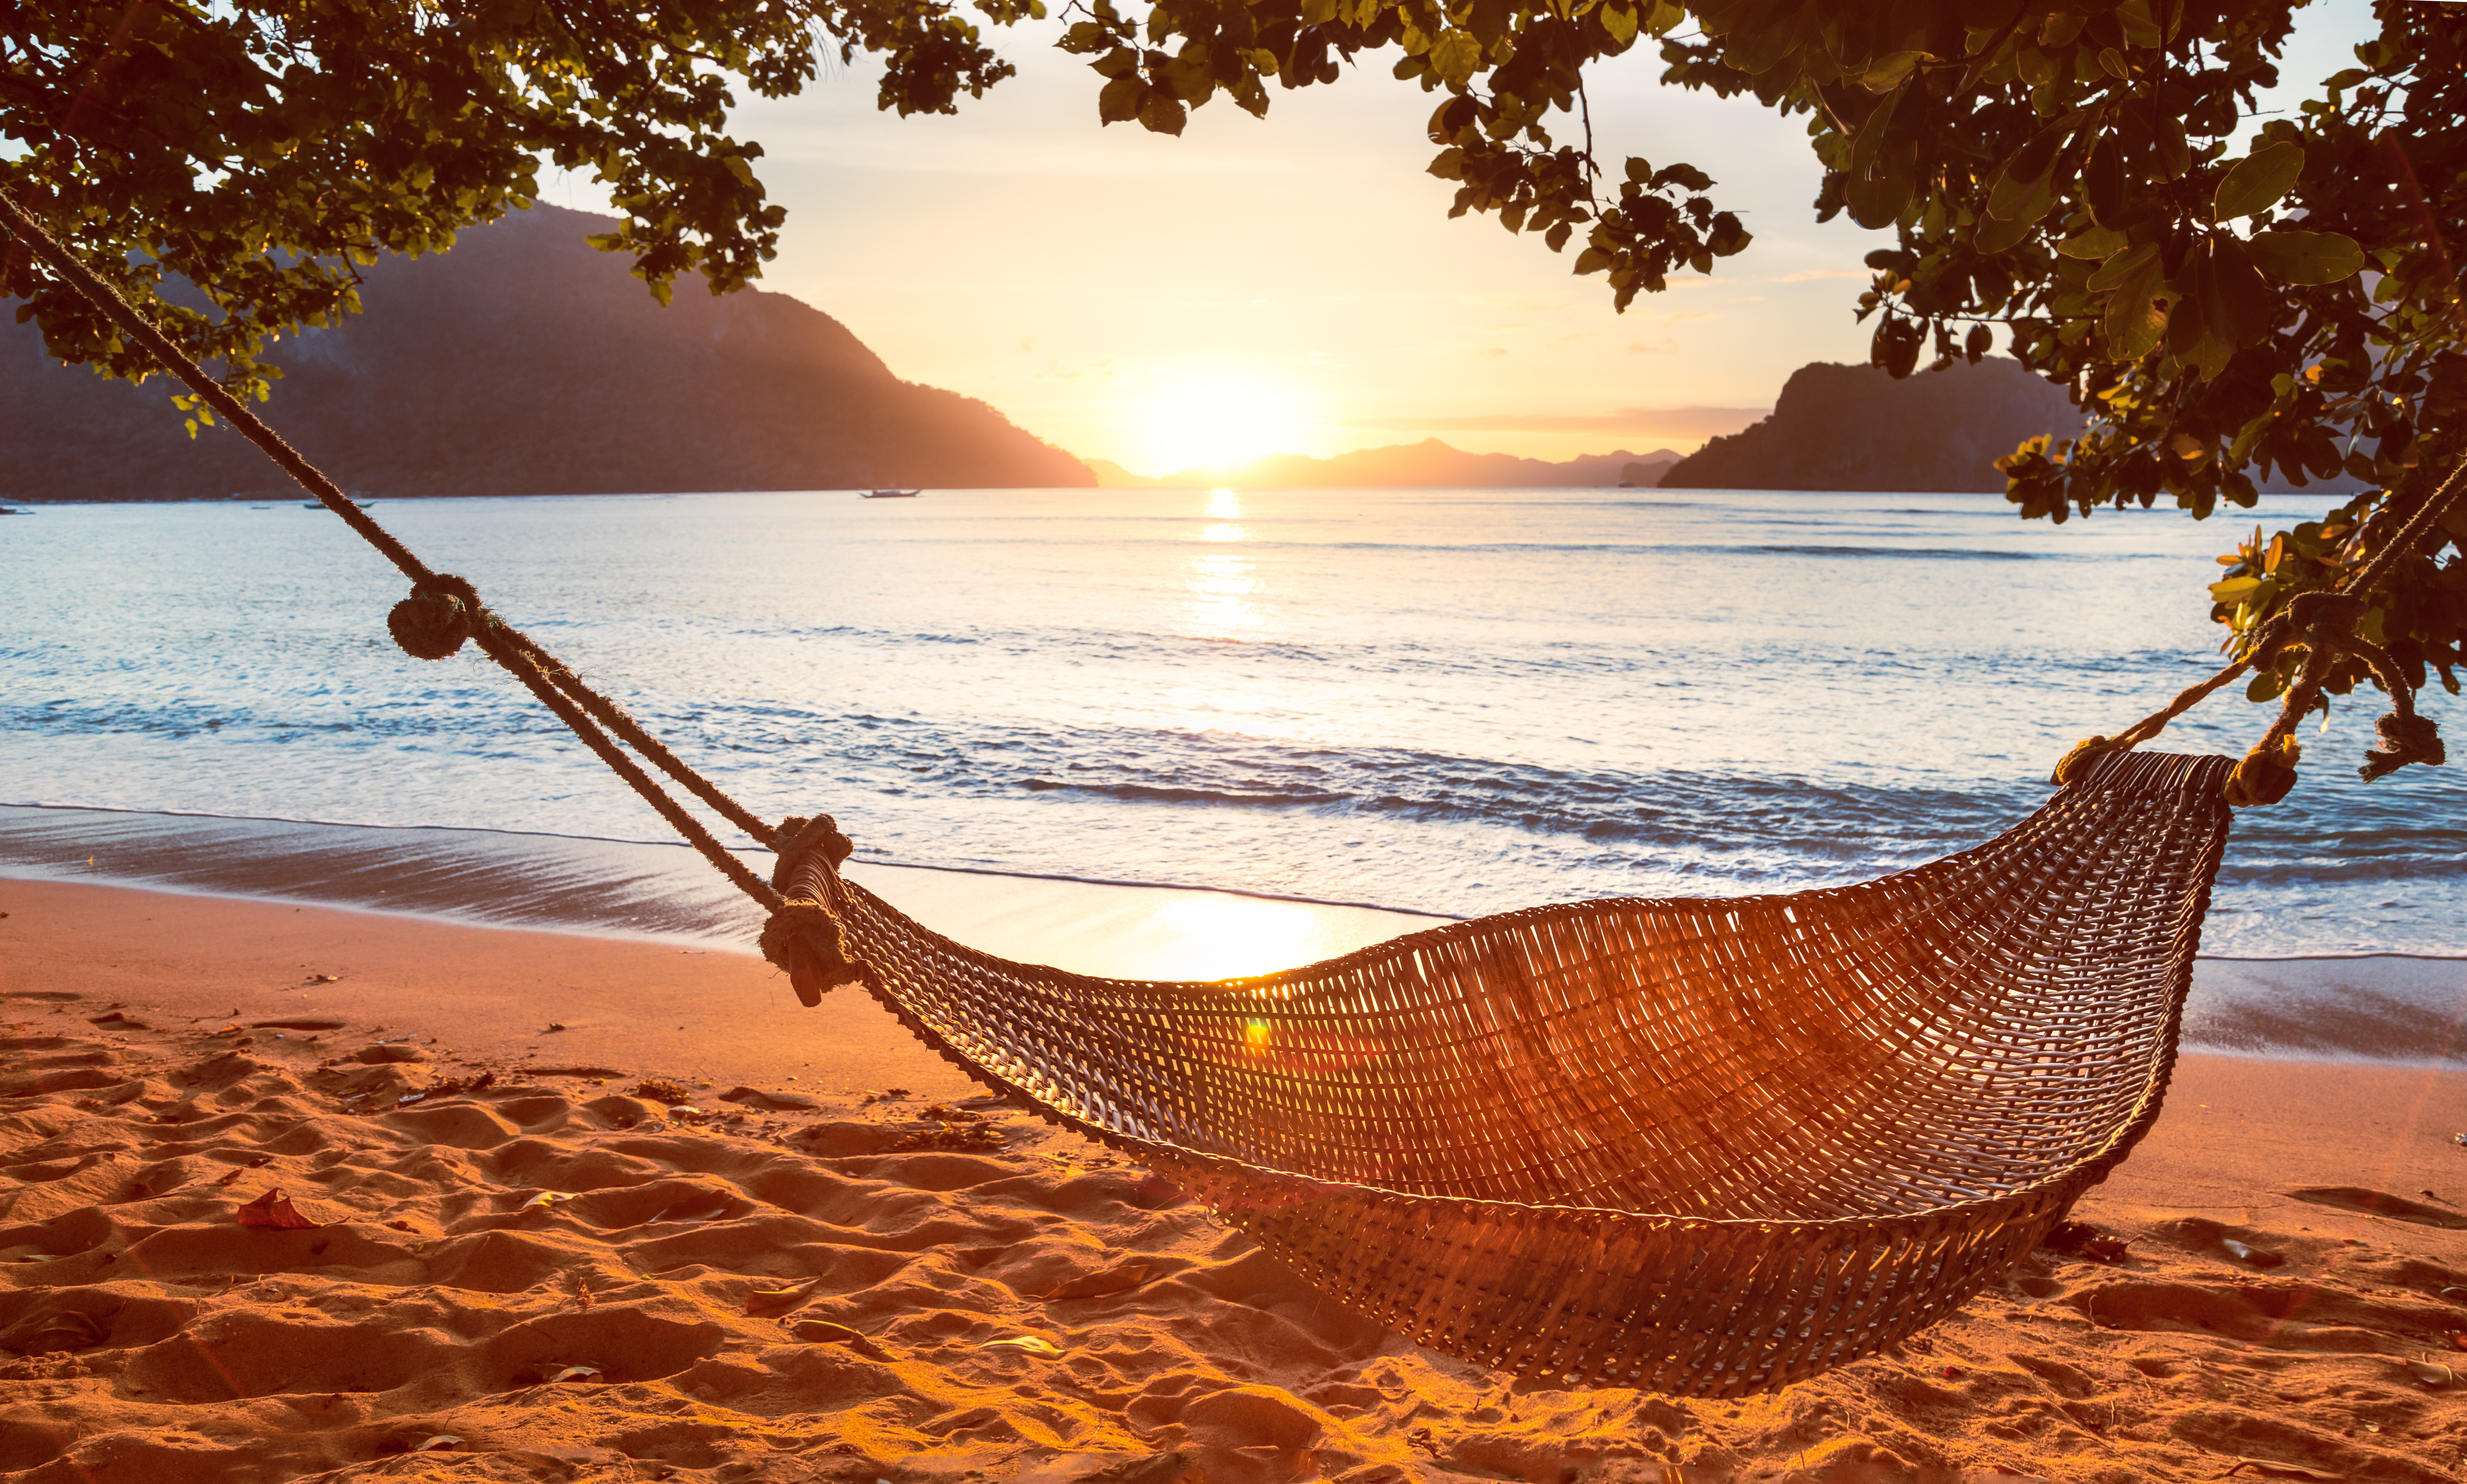 Hypnosis story to treat insomnia at sunset on a tropical island